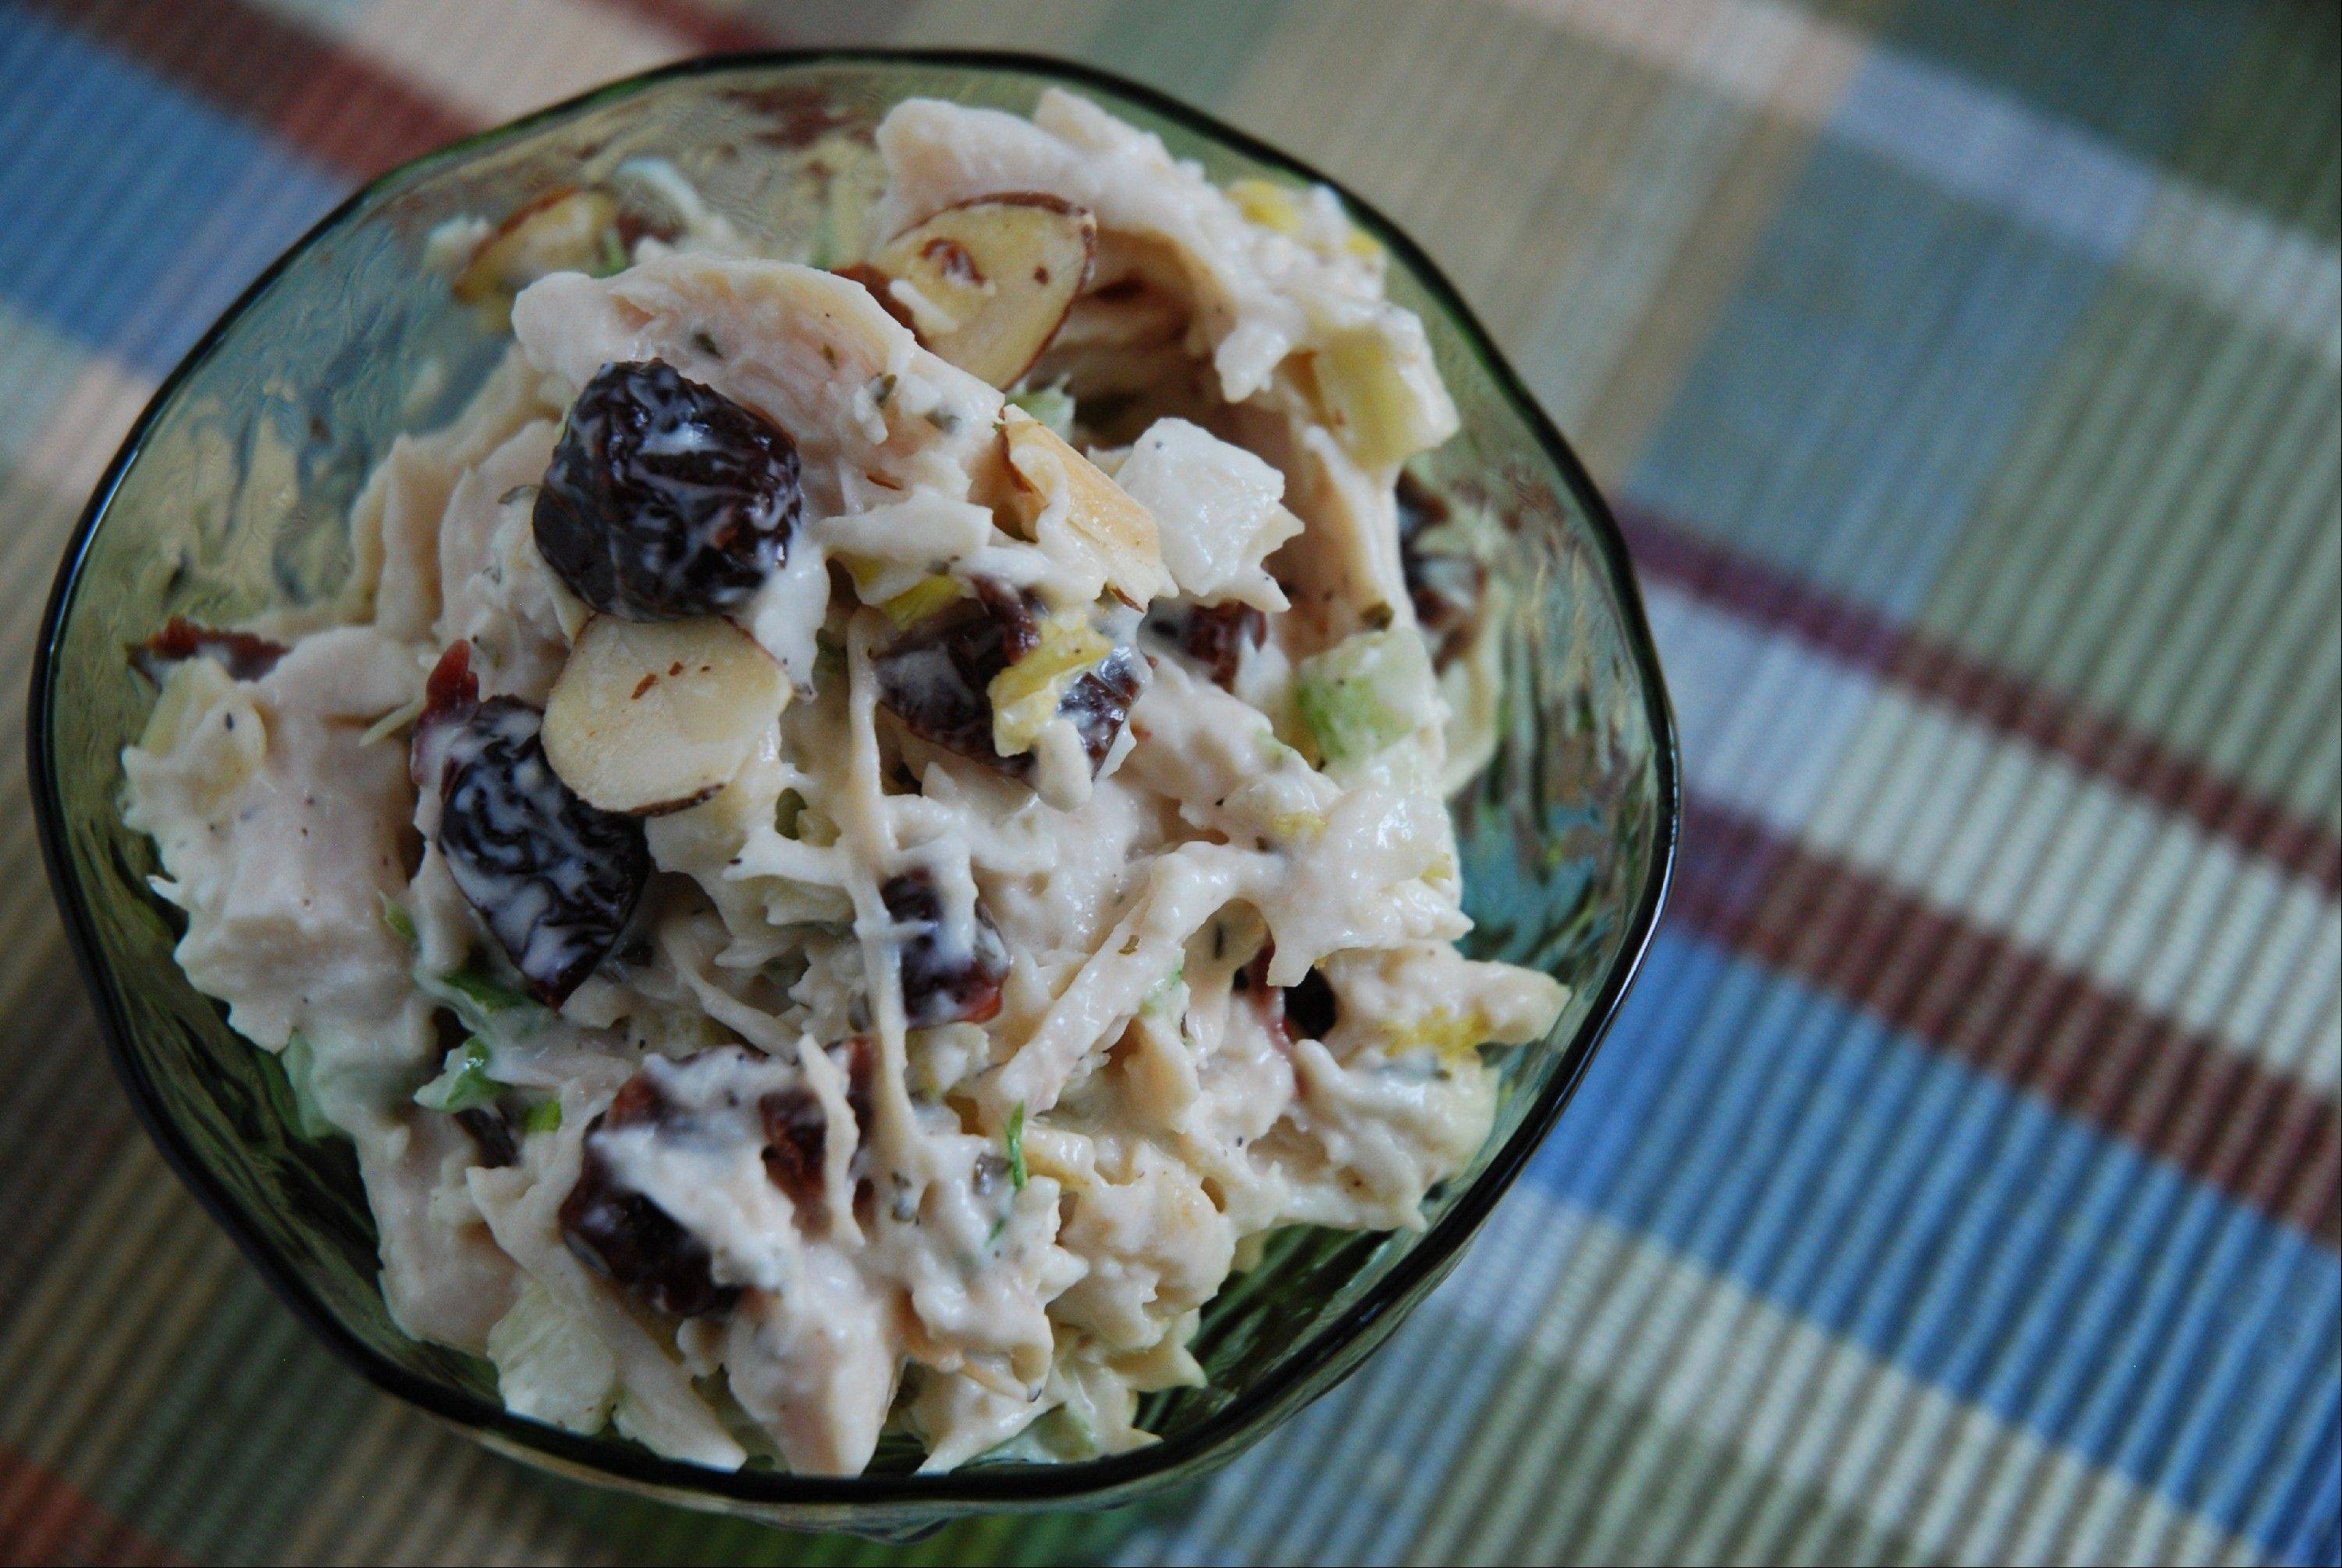 Try Cherry Almond Chicken Salad for an easy summer meal.